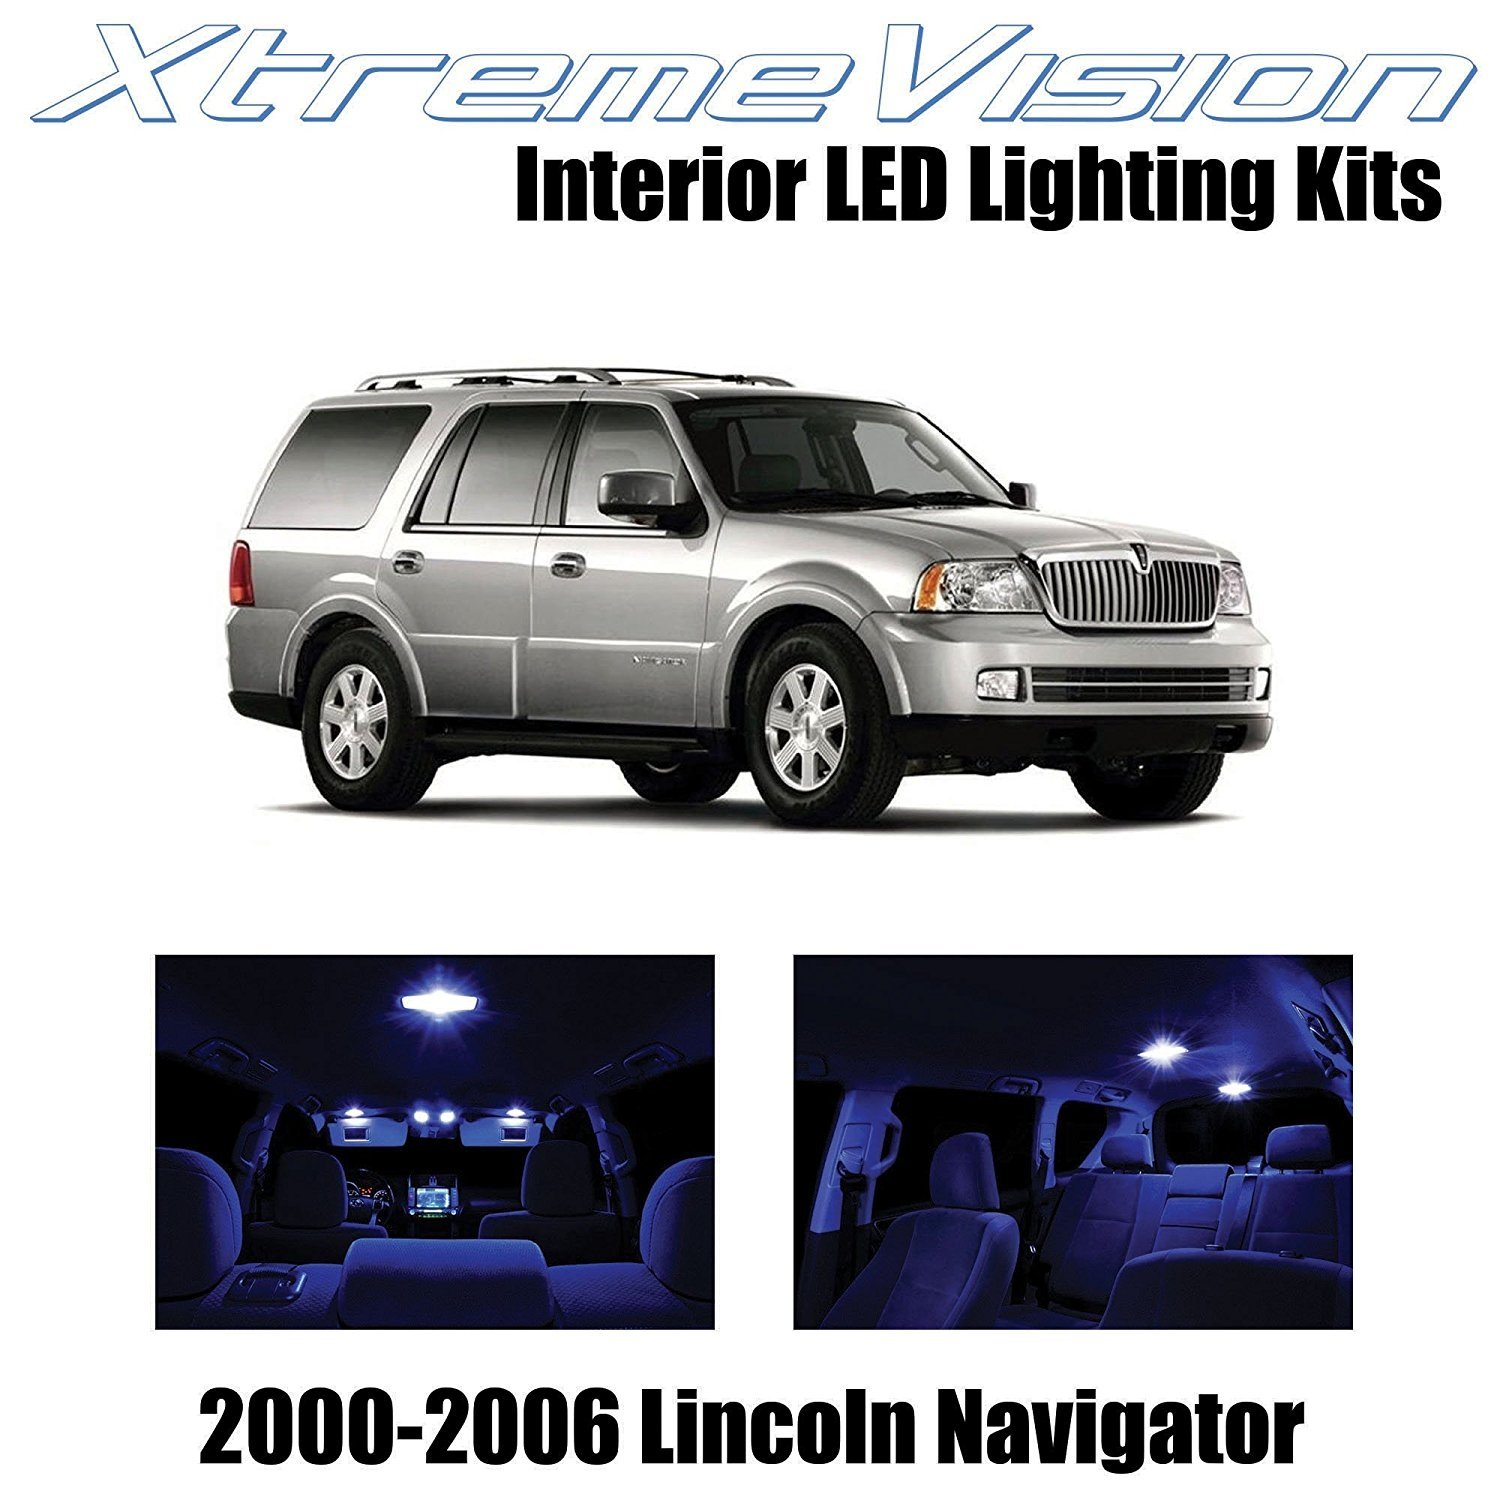 XtremeVision LED for Lincoln Navigator 2000-2006 (6 Pieces) Blue Premium Interior LED Kit Package + Installation Tool